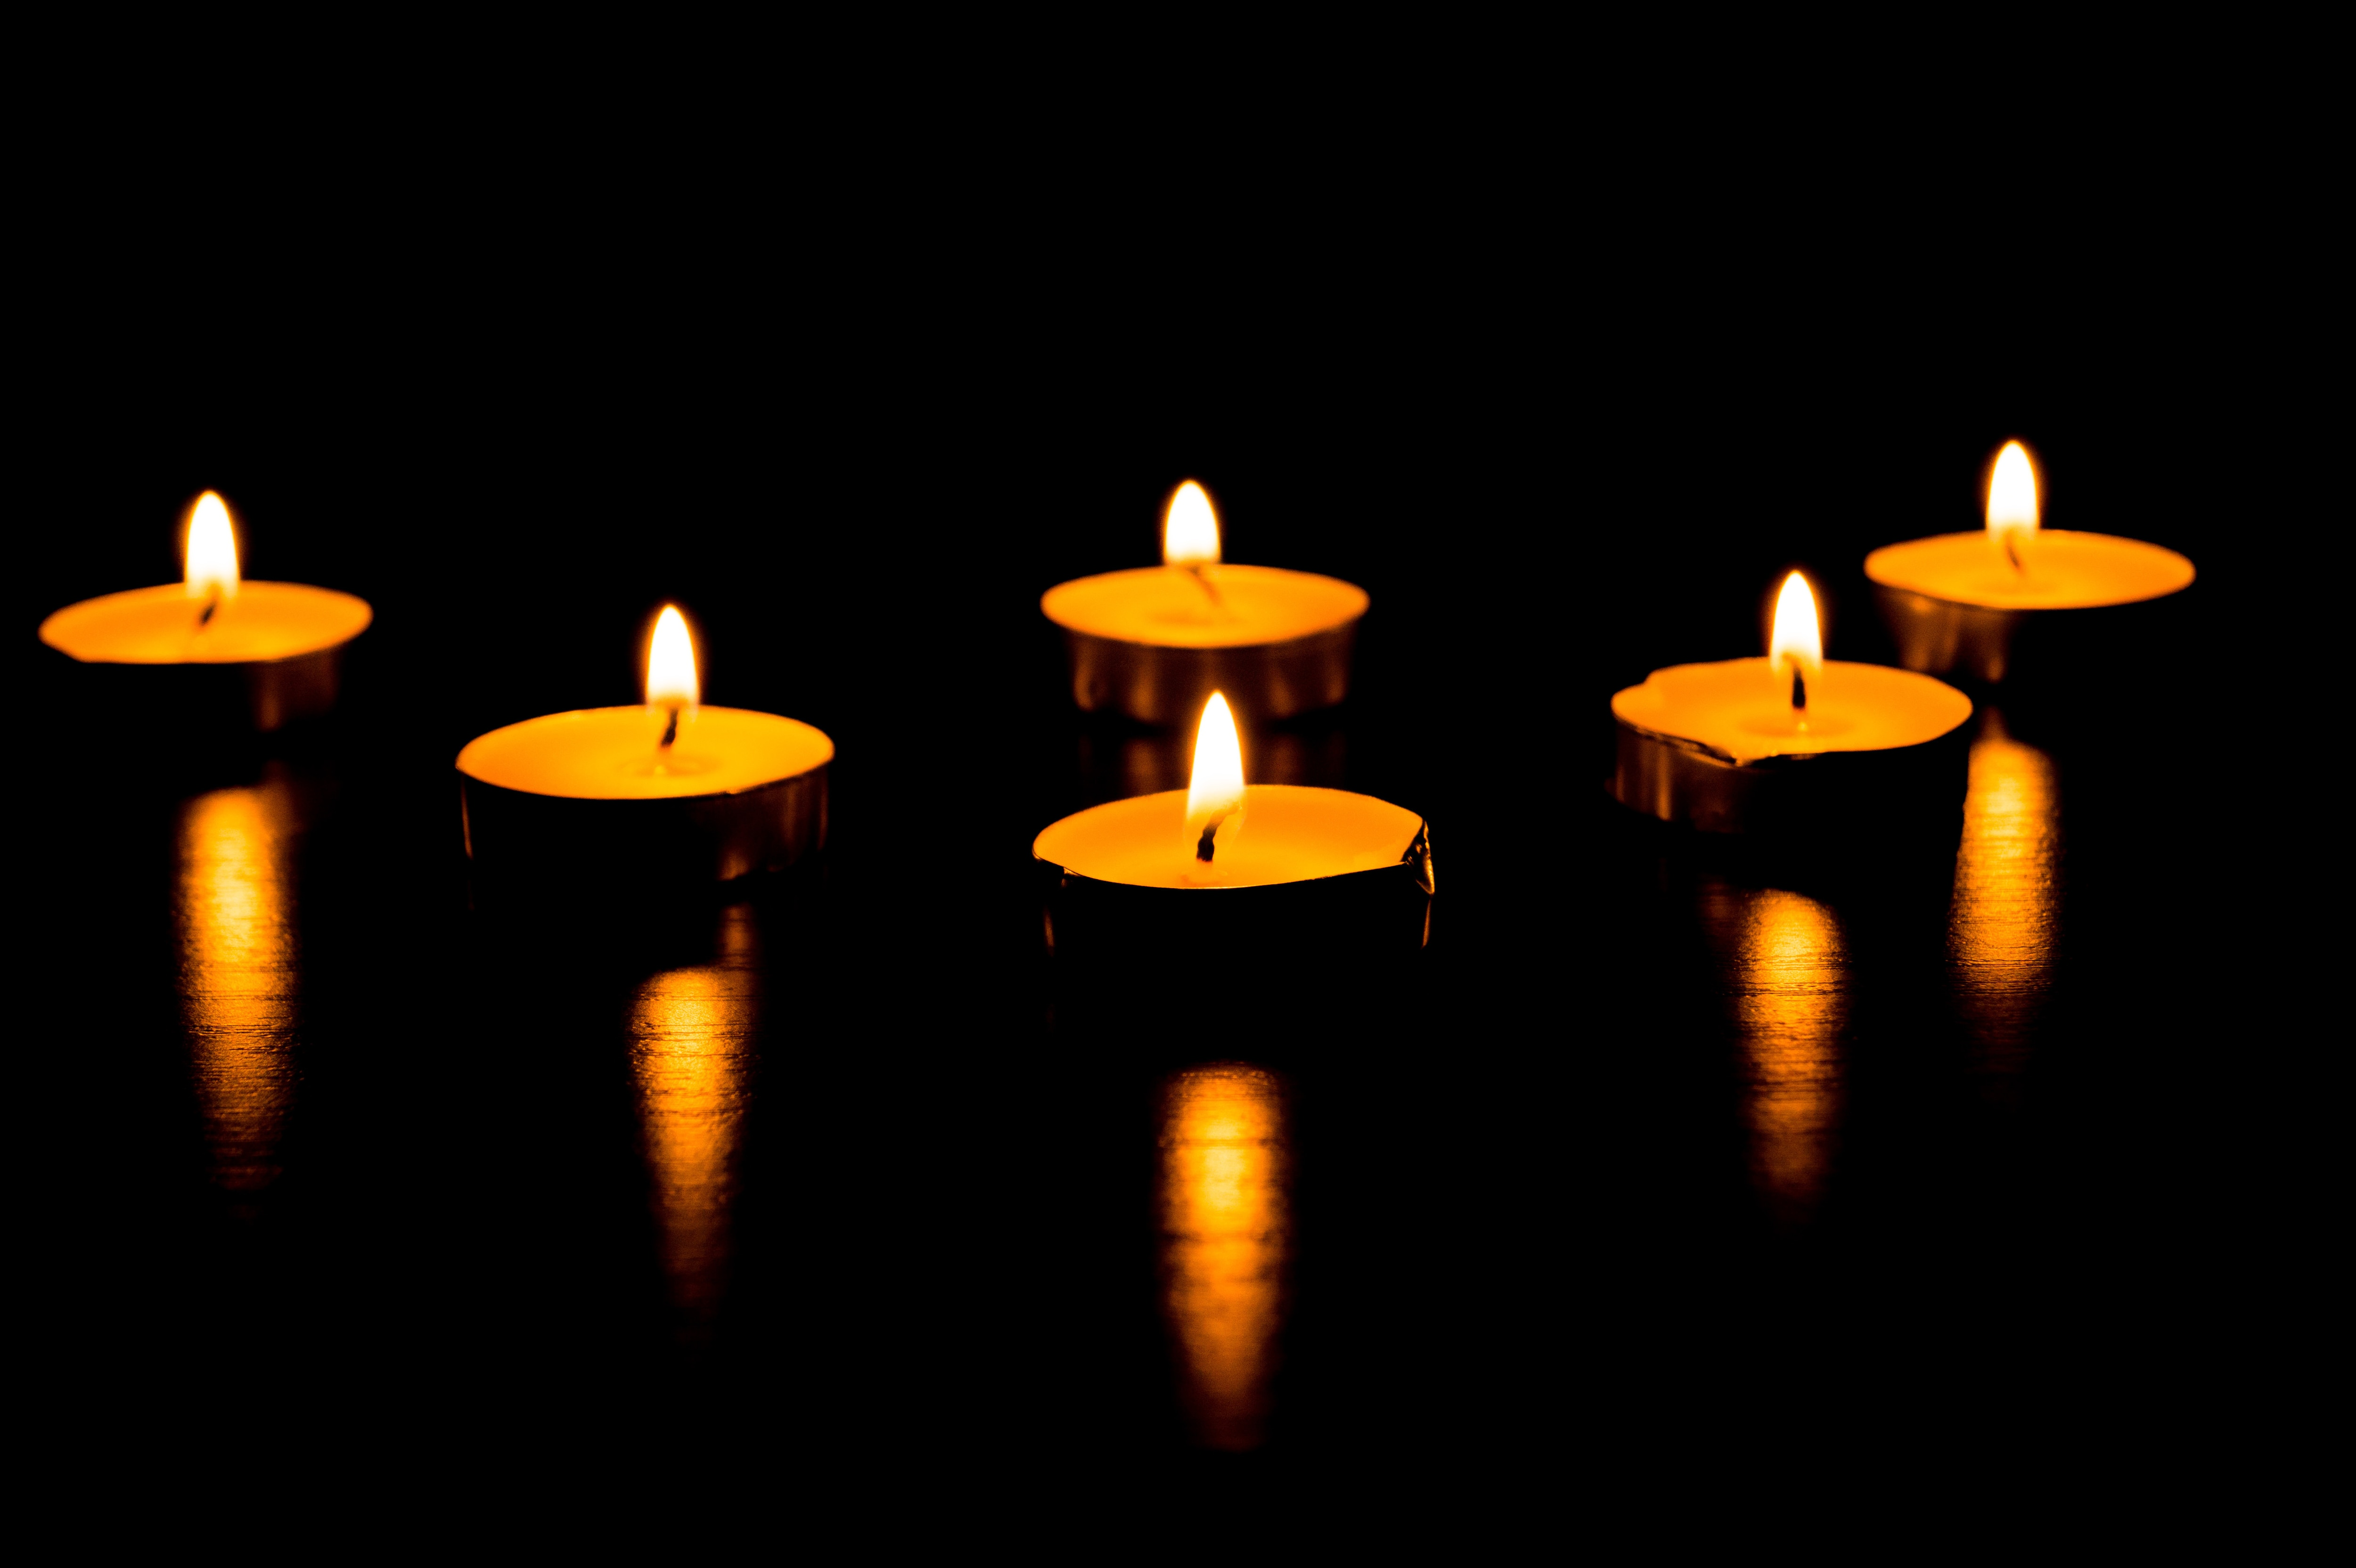 Burning candles - a symbol of International Holocaust Remembrance day 27 January - Image